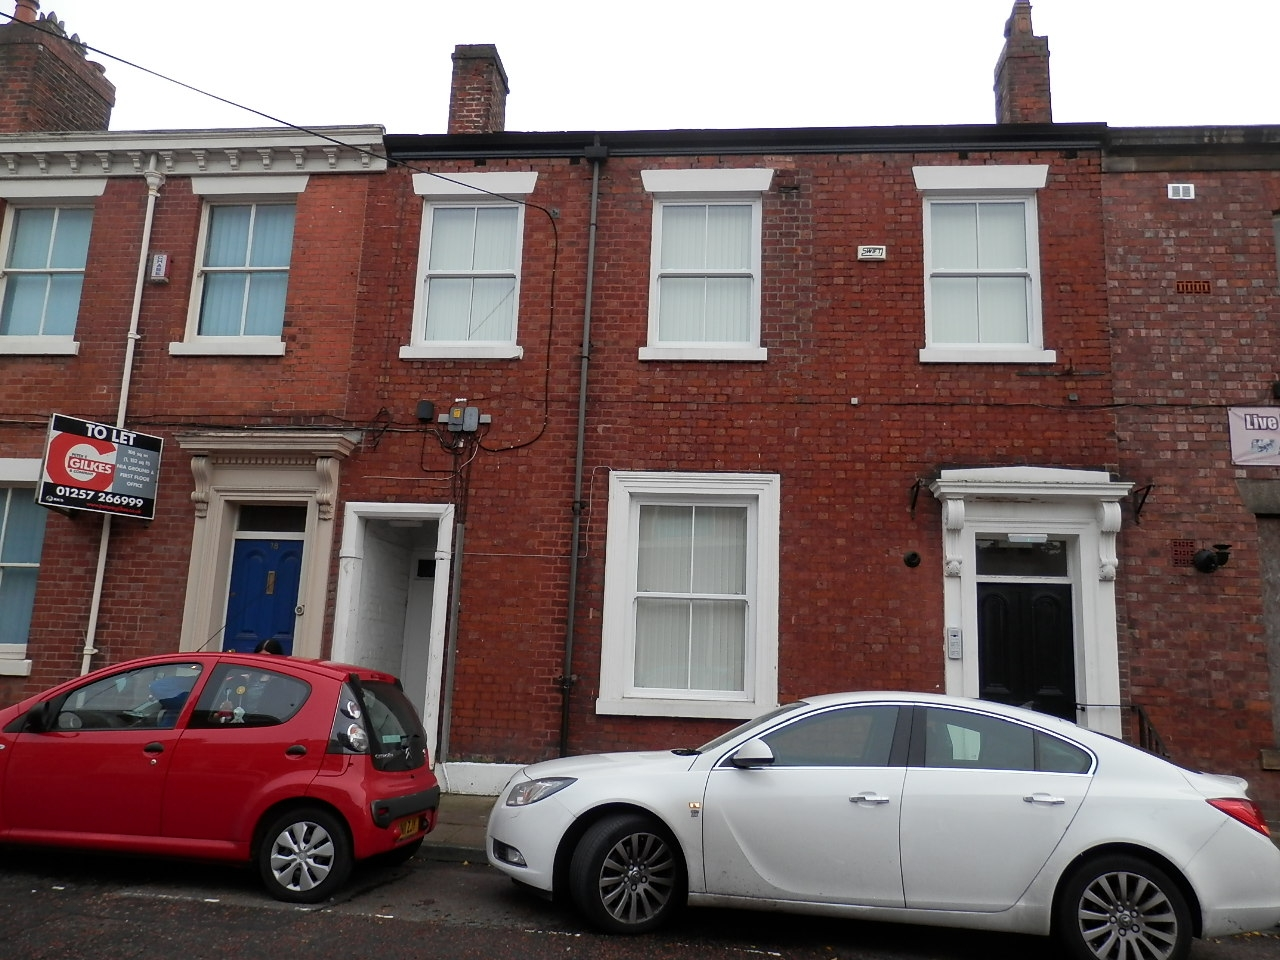 1 bedroom apartment flat/apartment in Chorley - FRONT.